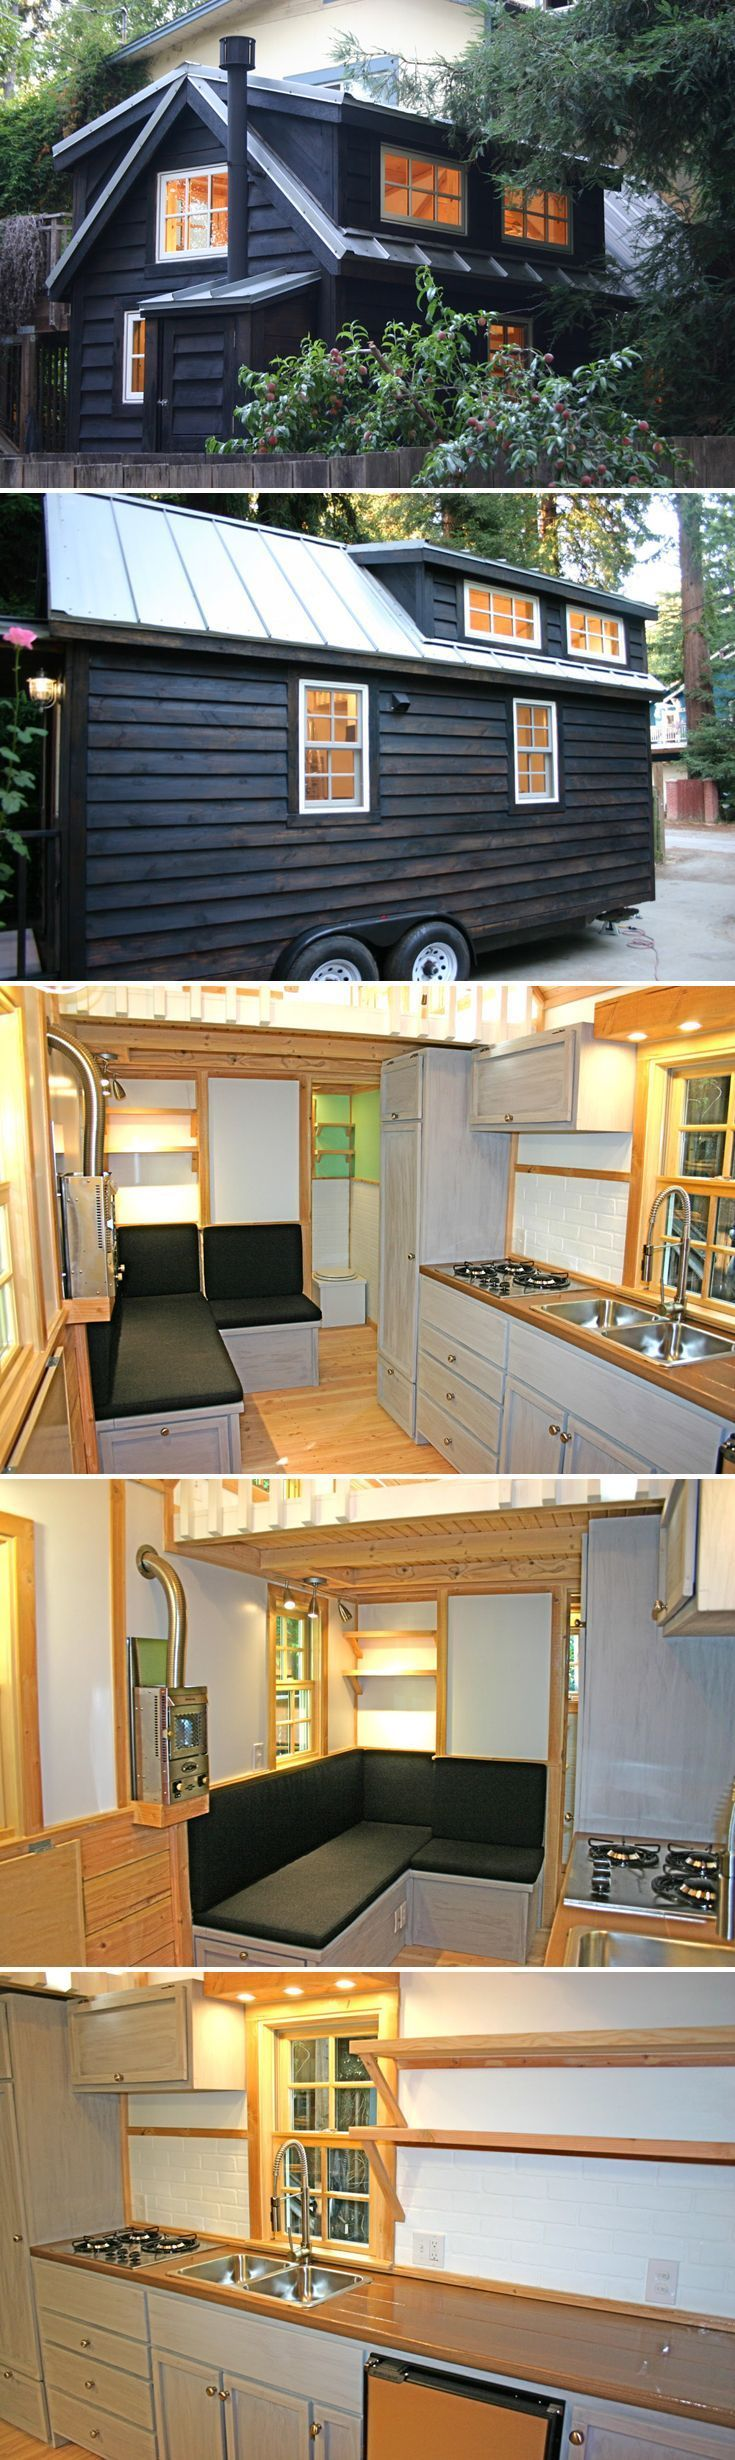 556 best tiny house images on pinterest | tiny house living